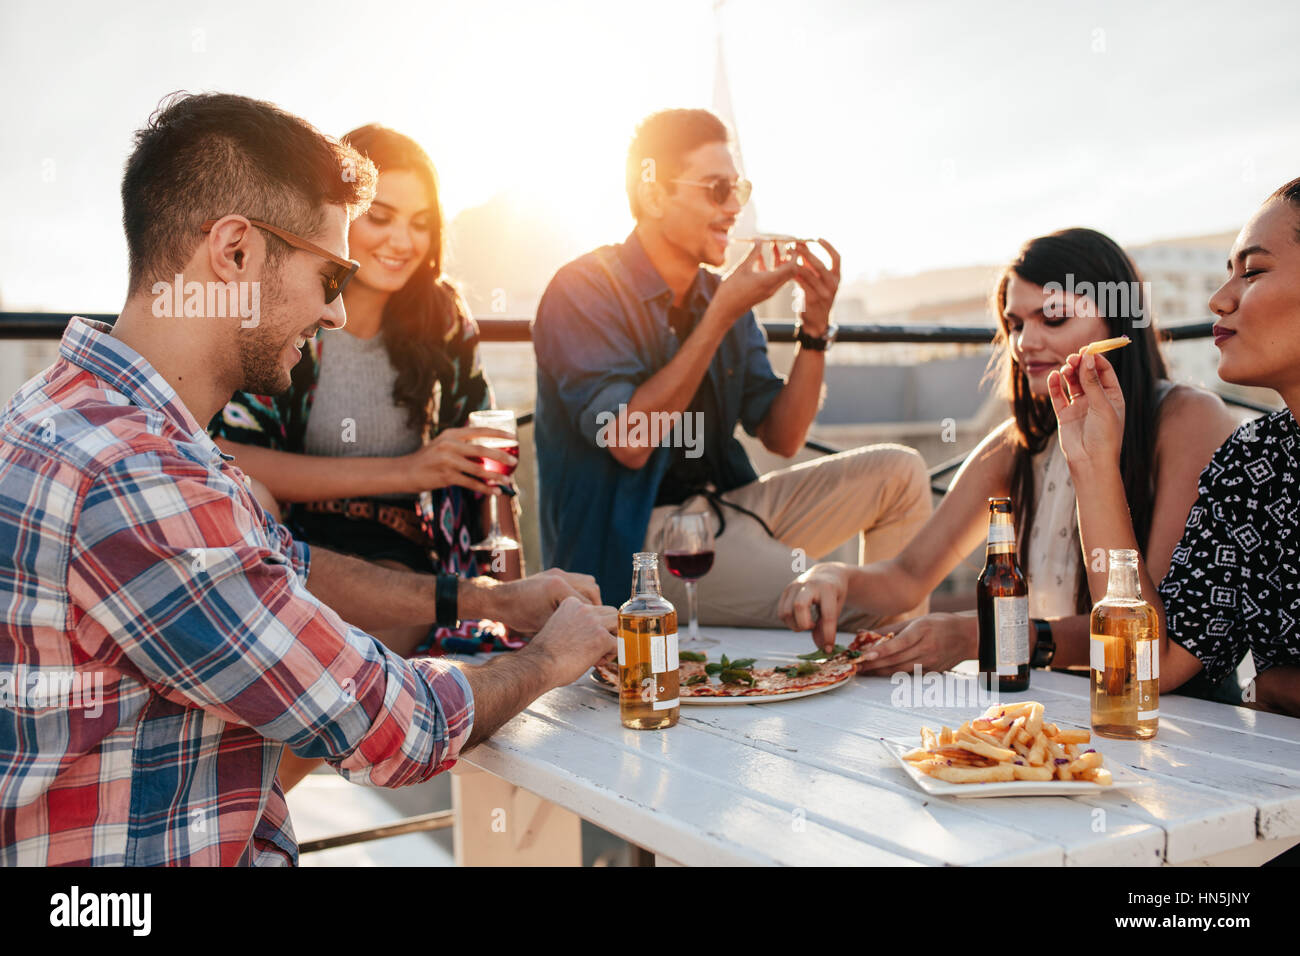 Group of young people sitting around and eating pizza. Friends partying and eating pizza. - Stock Image